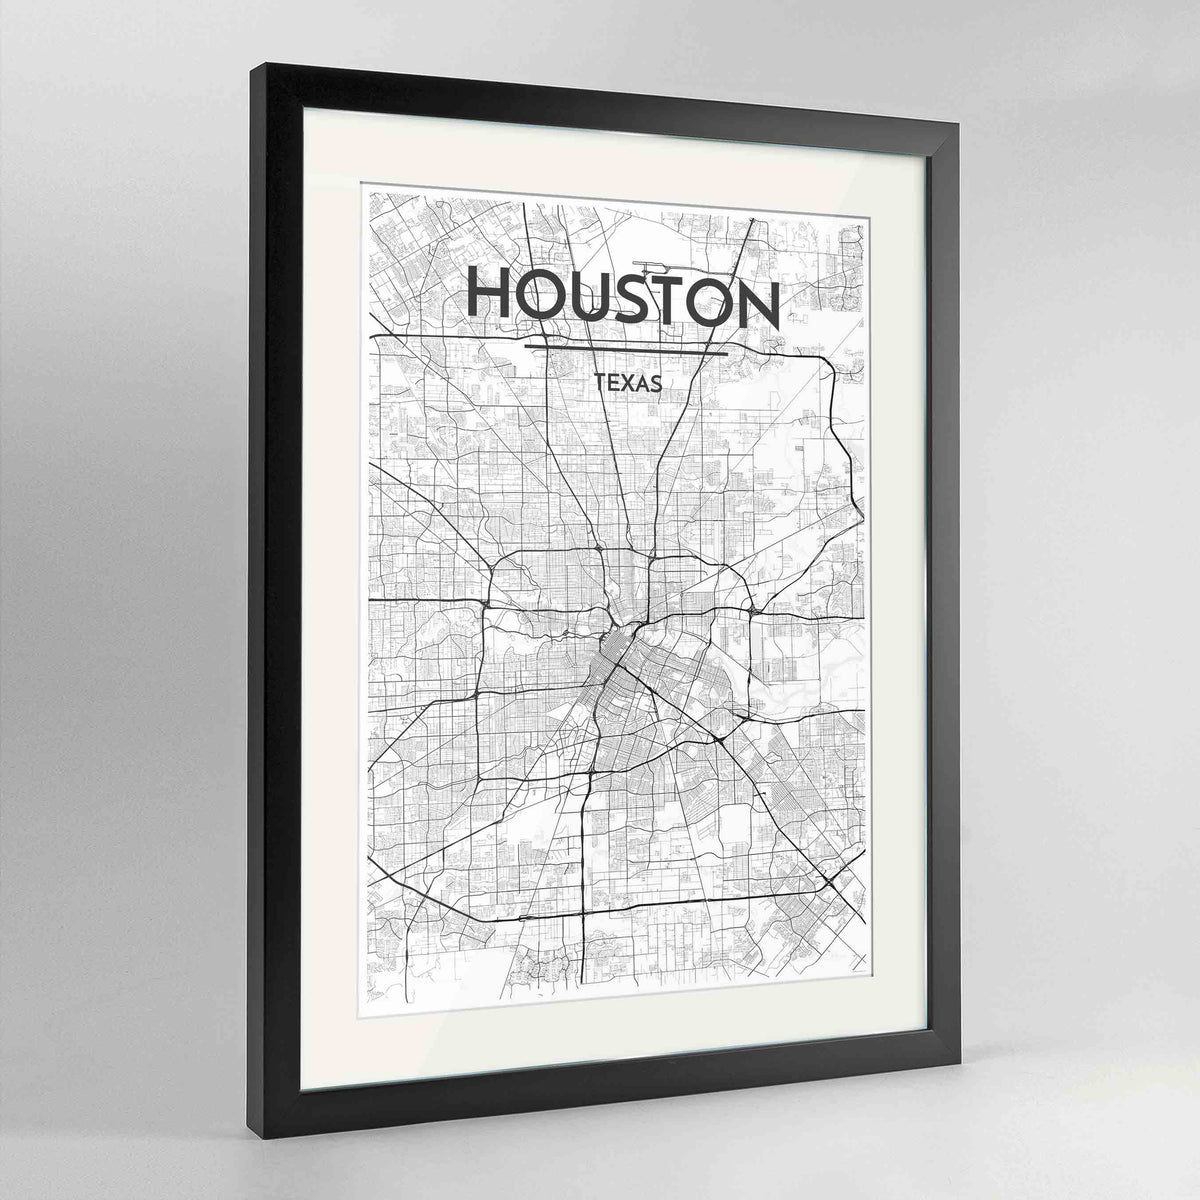 "Framed Houston Map Art Print 24x36"" Contemporary Black frame Point Two Design Group"